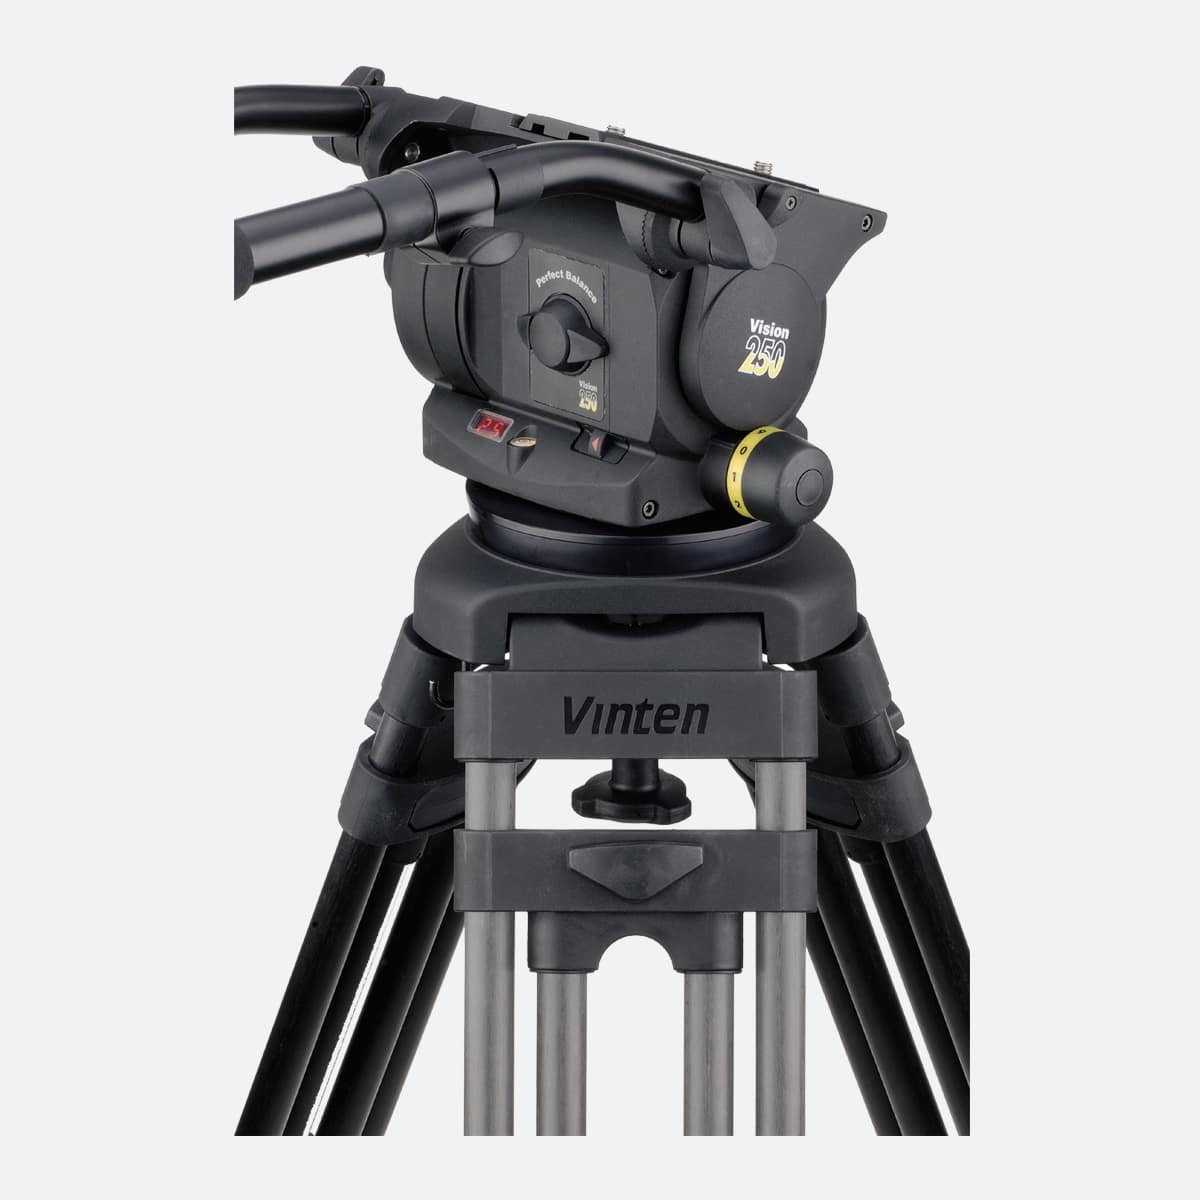 Vinten Vision 250 pan and tilt tripod head